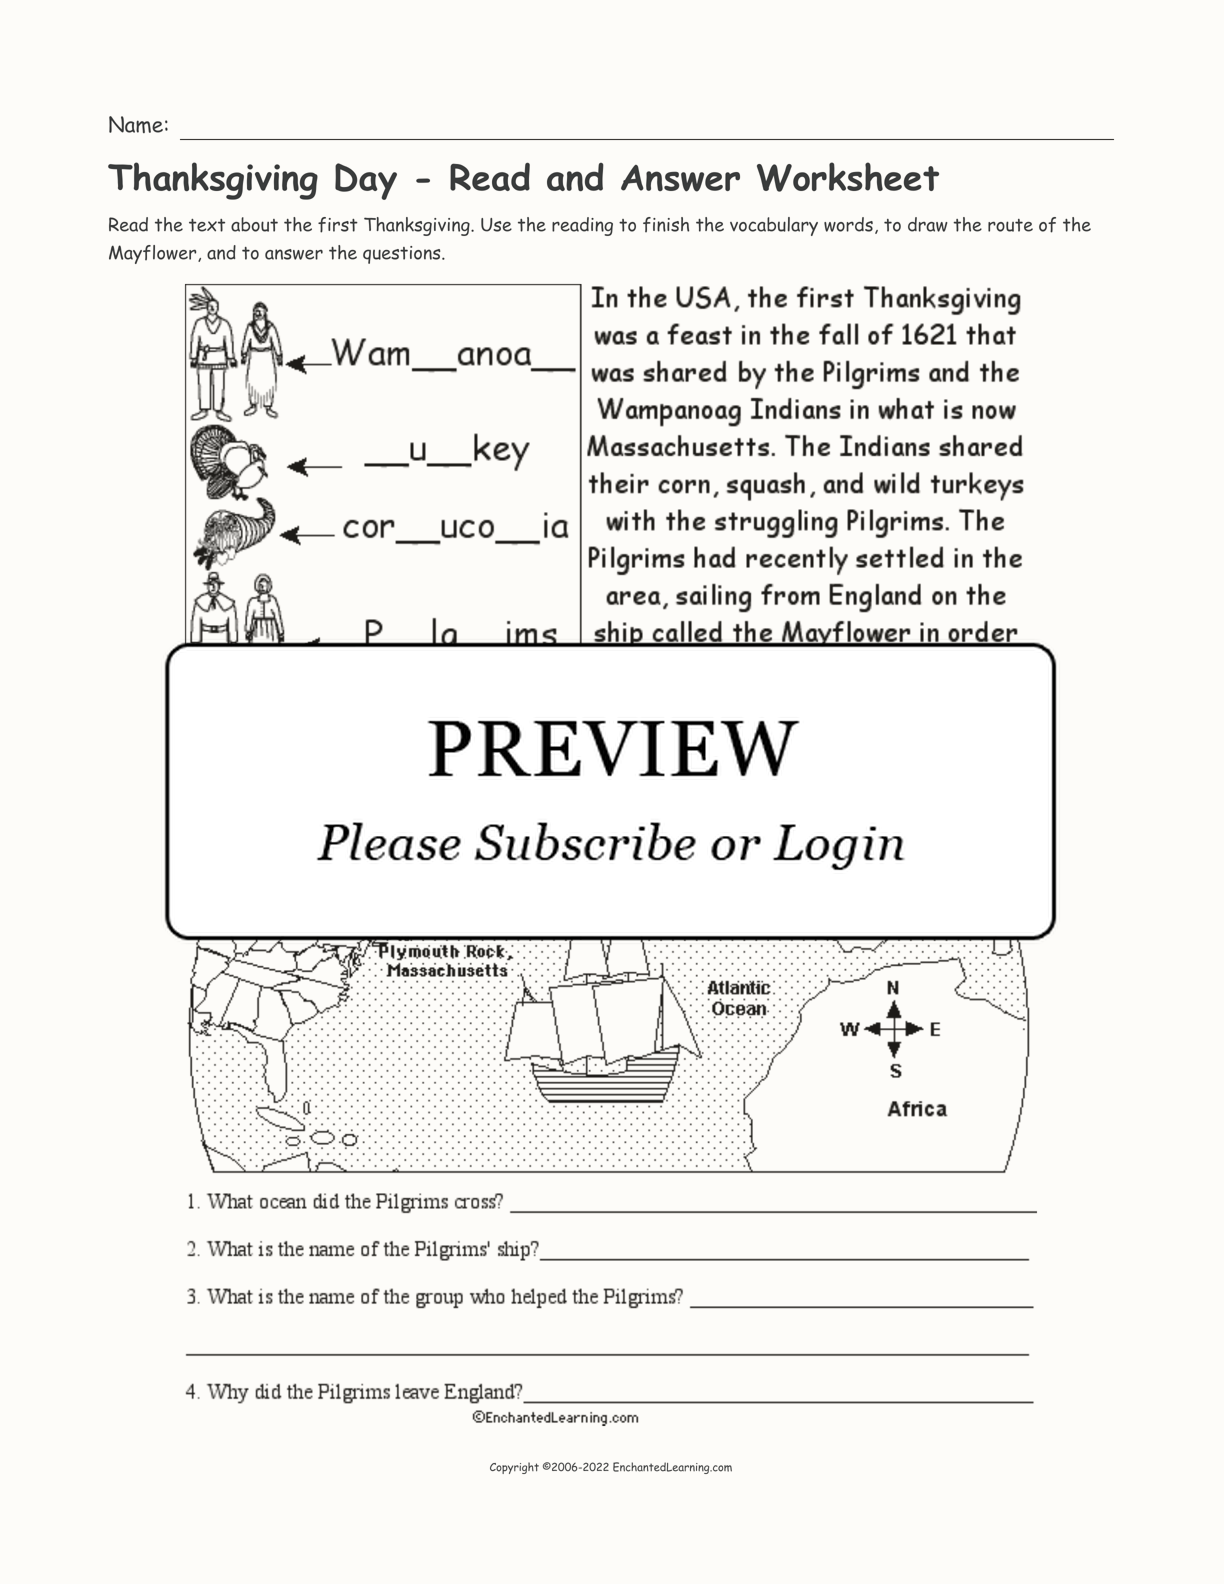 Thanksgiving Day - Read and Answer Worksheet interactive worksheet page 1